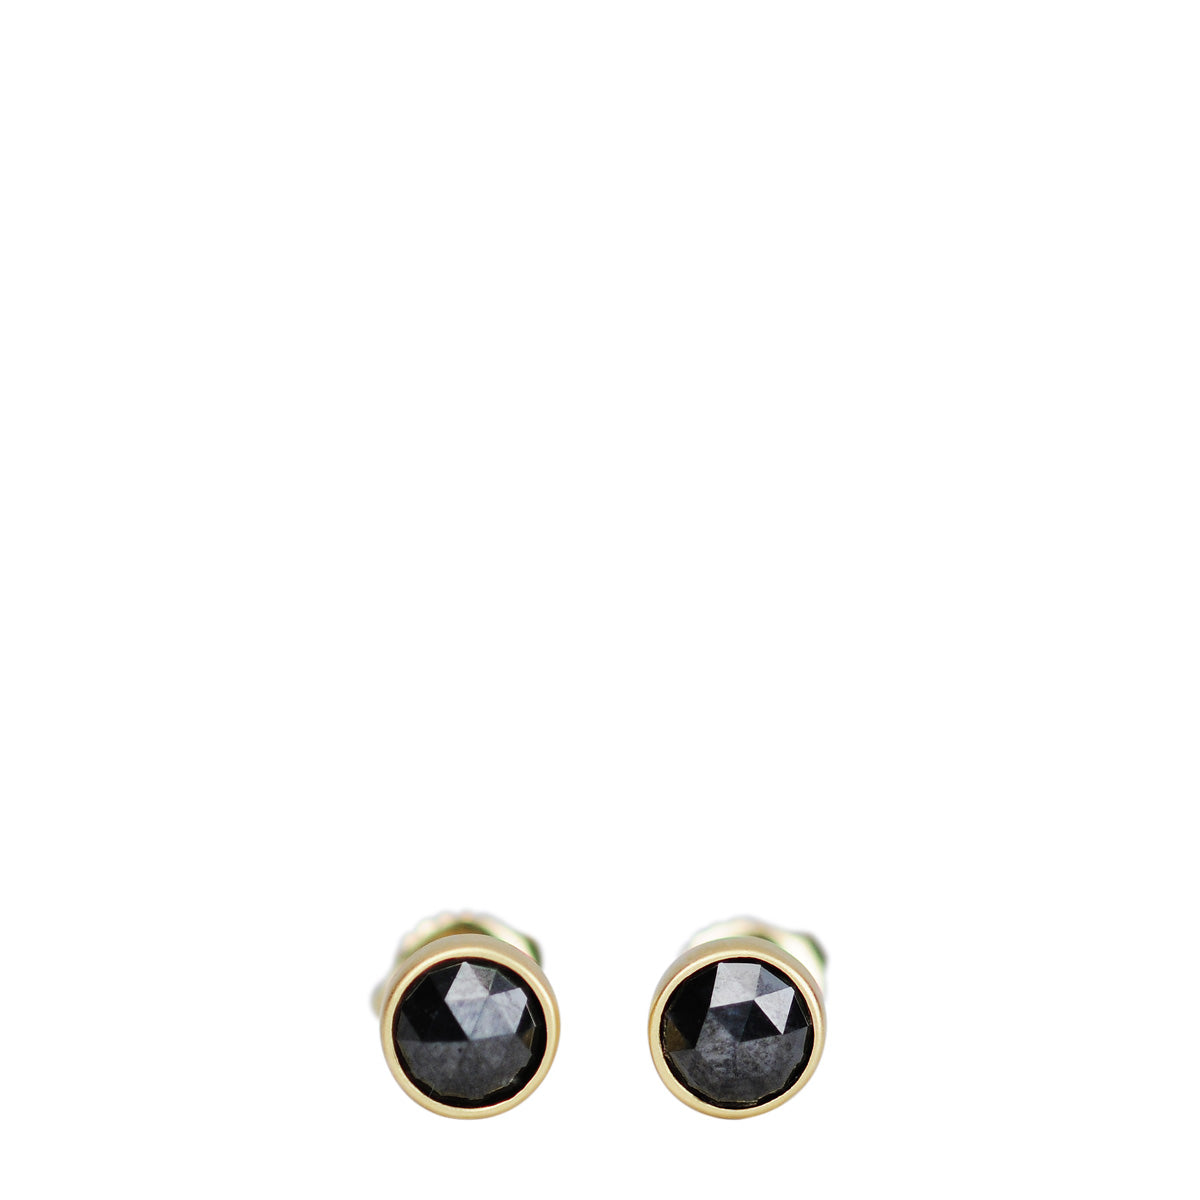 18K Gold 5.5mm Black Diamond Studs